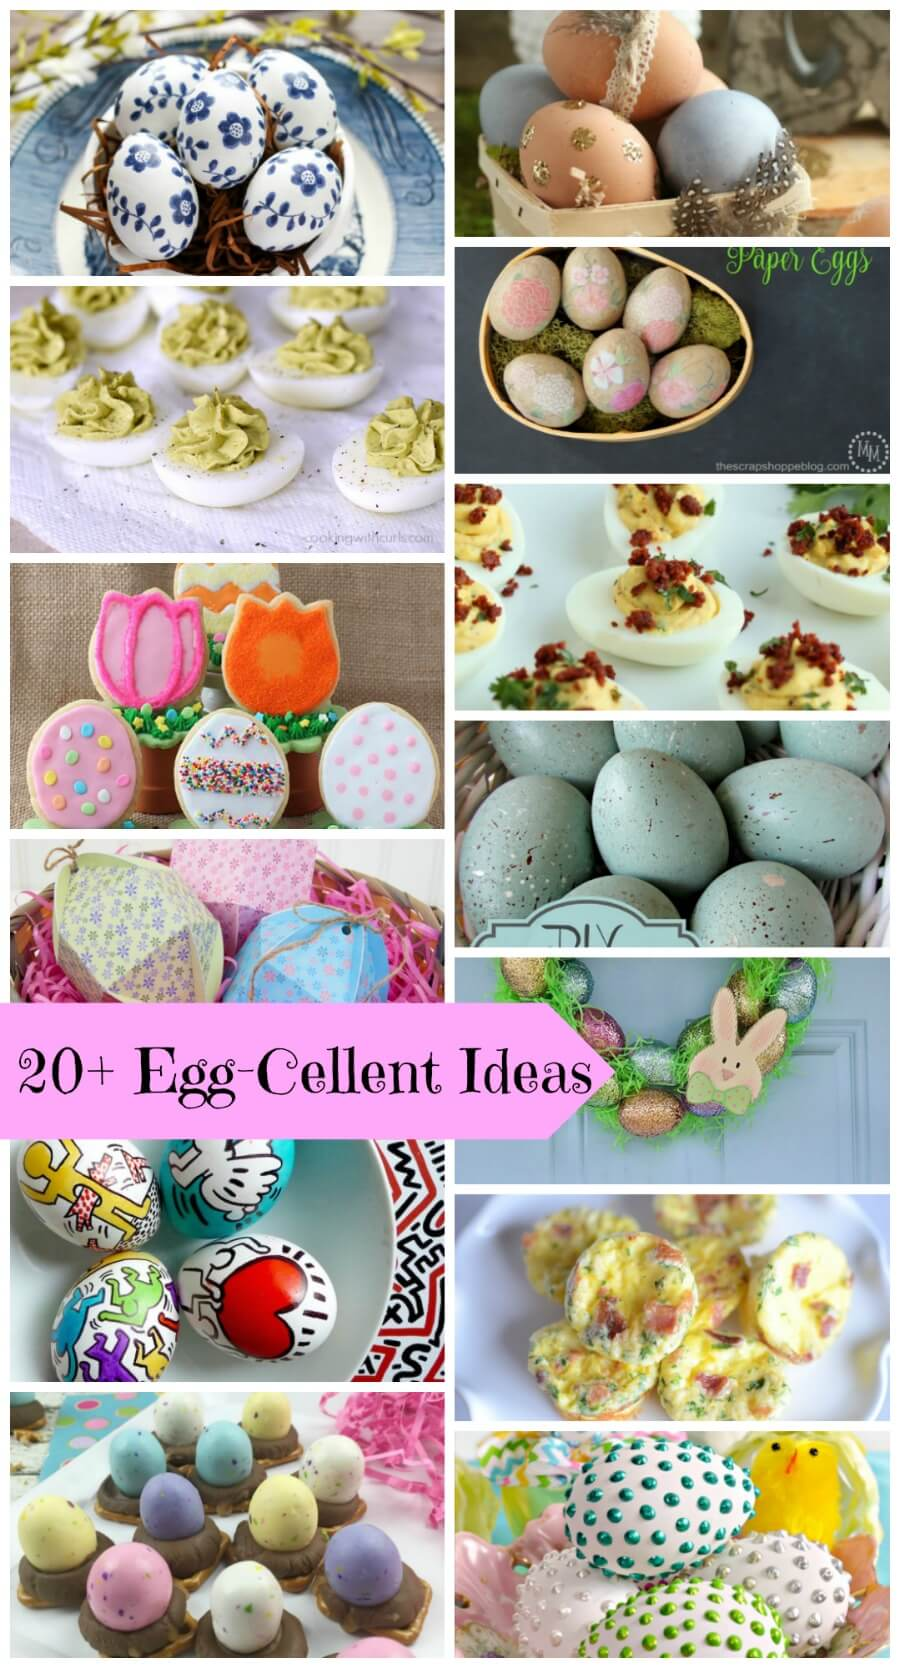 20+ Egg-Cellent Projects and Recipes from Nap-Time Creations